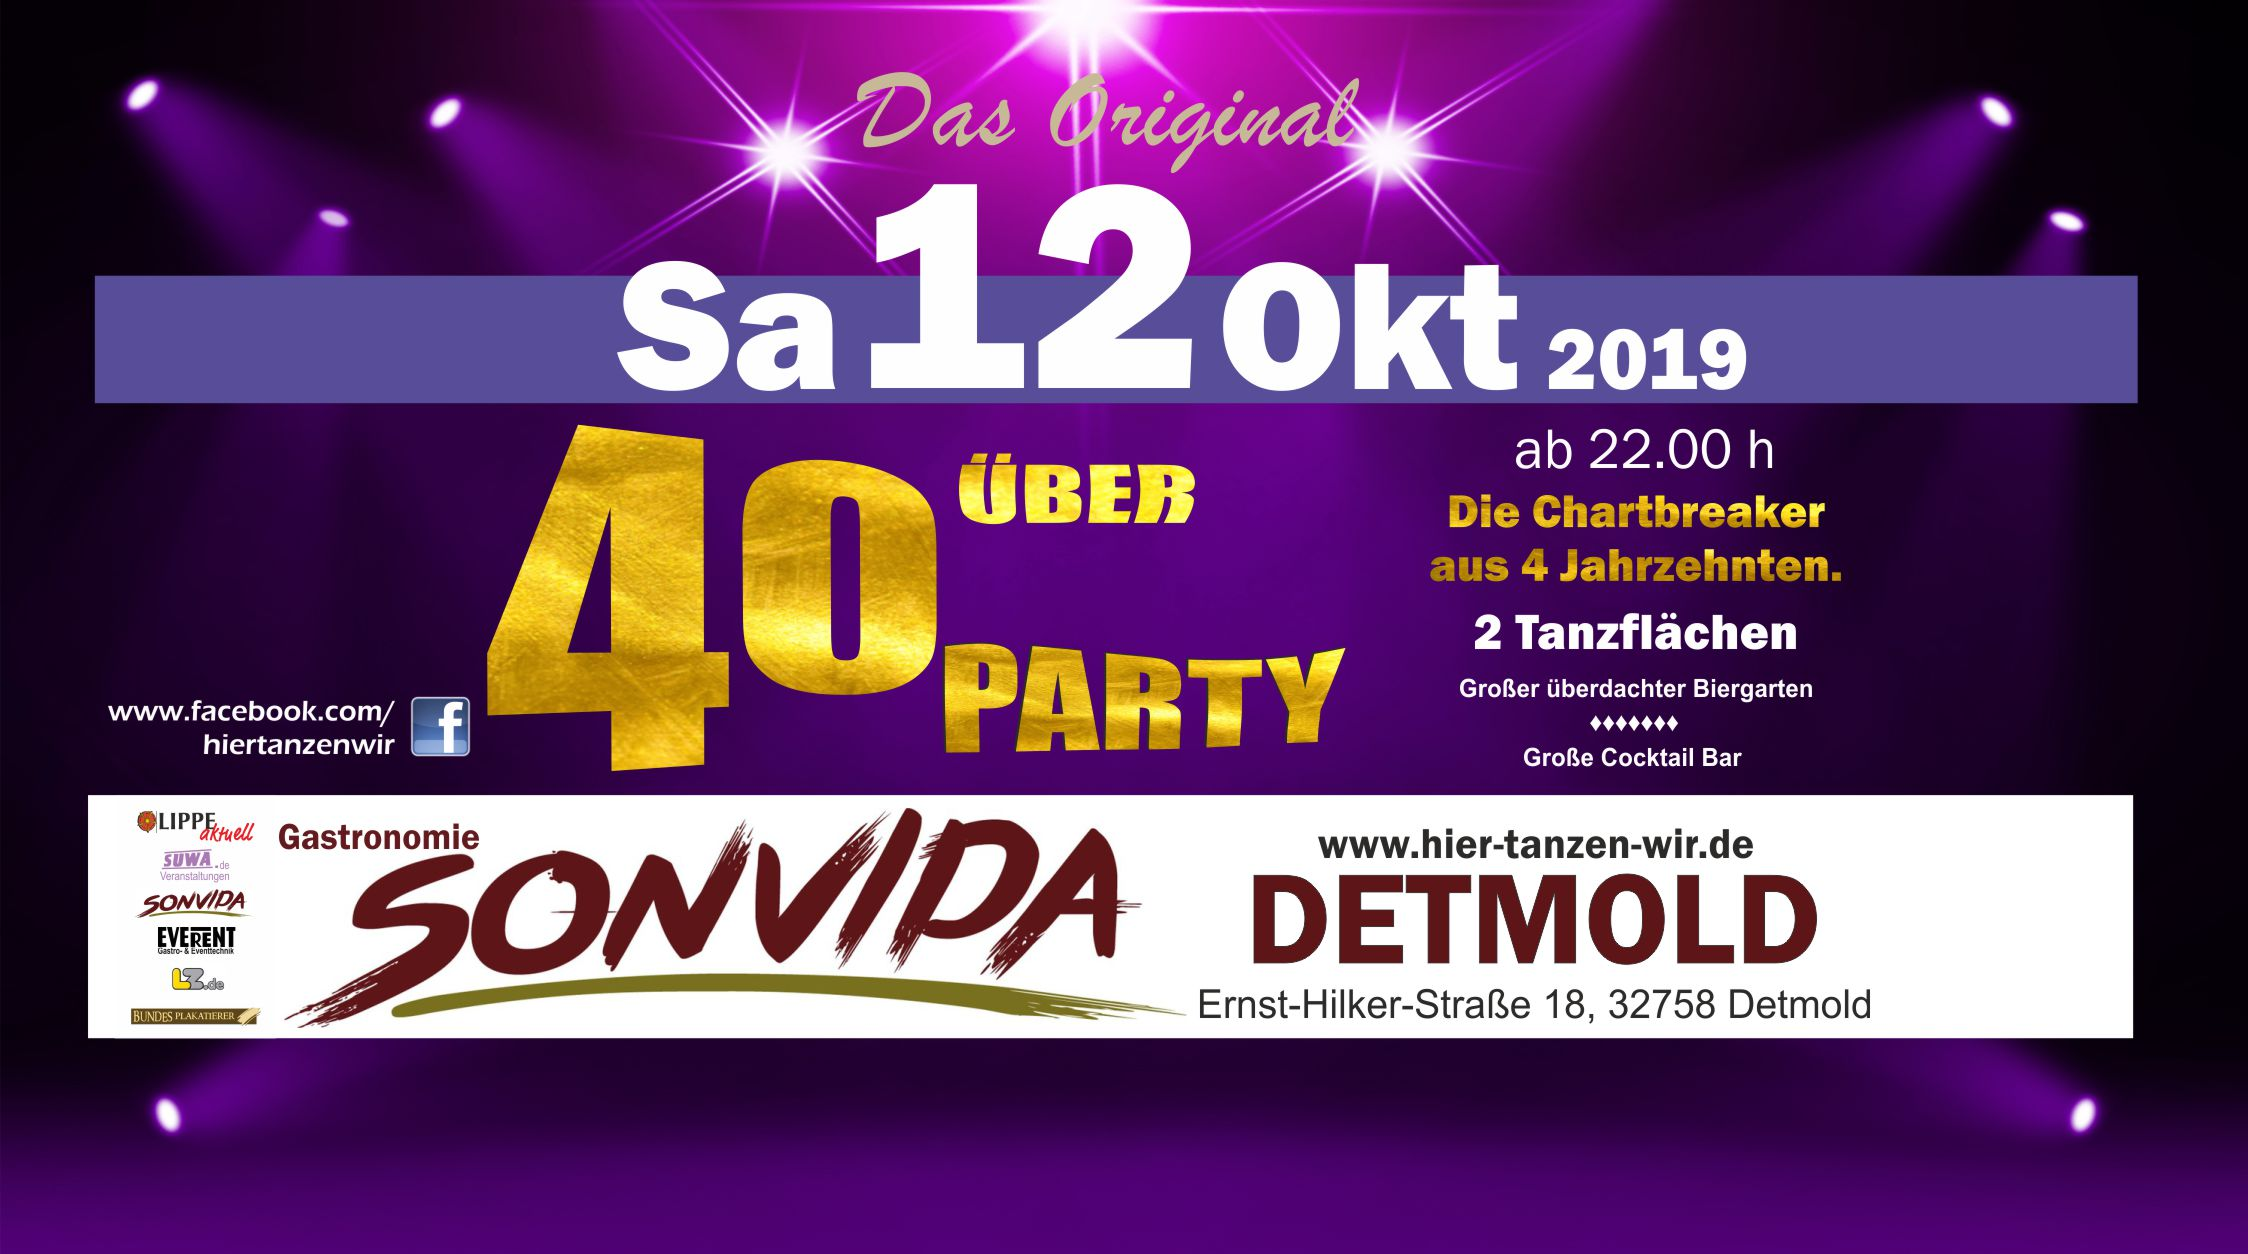 Ü40 Party 12 Okt 2019 SONVIDA Detmold